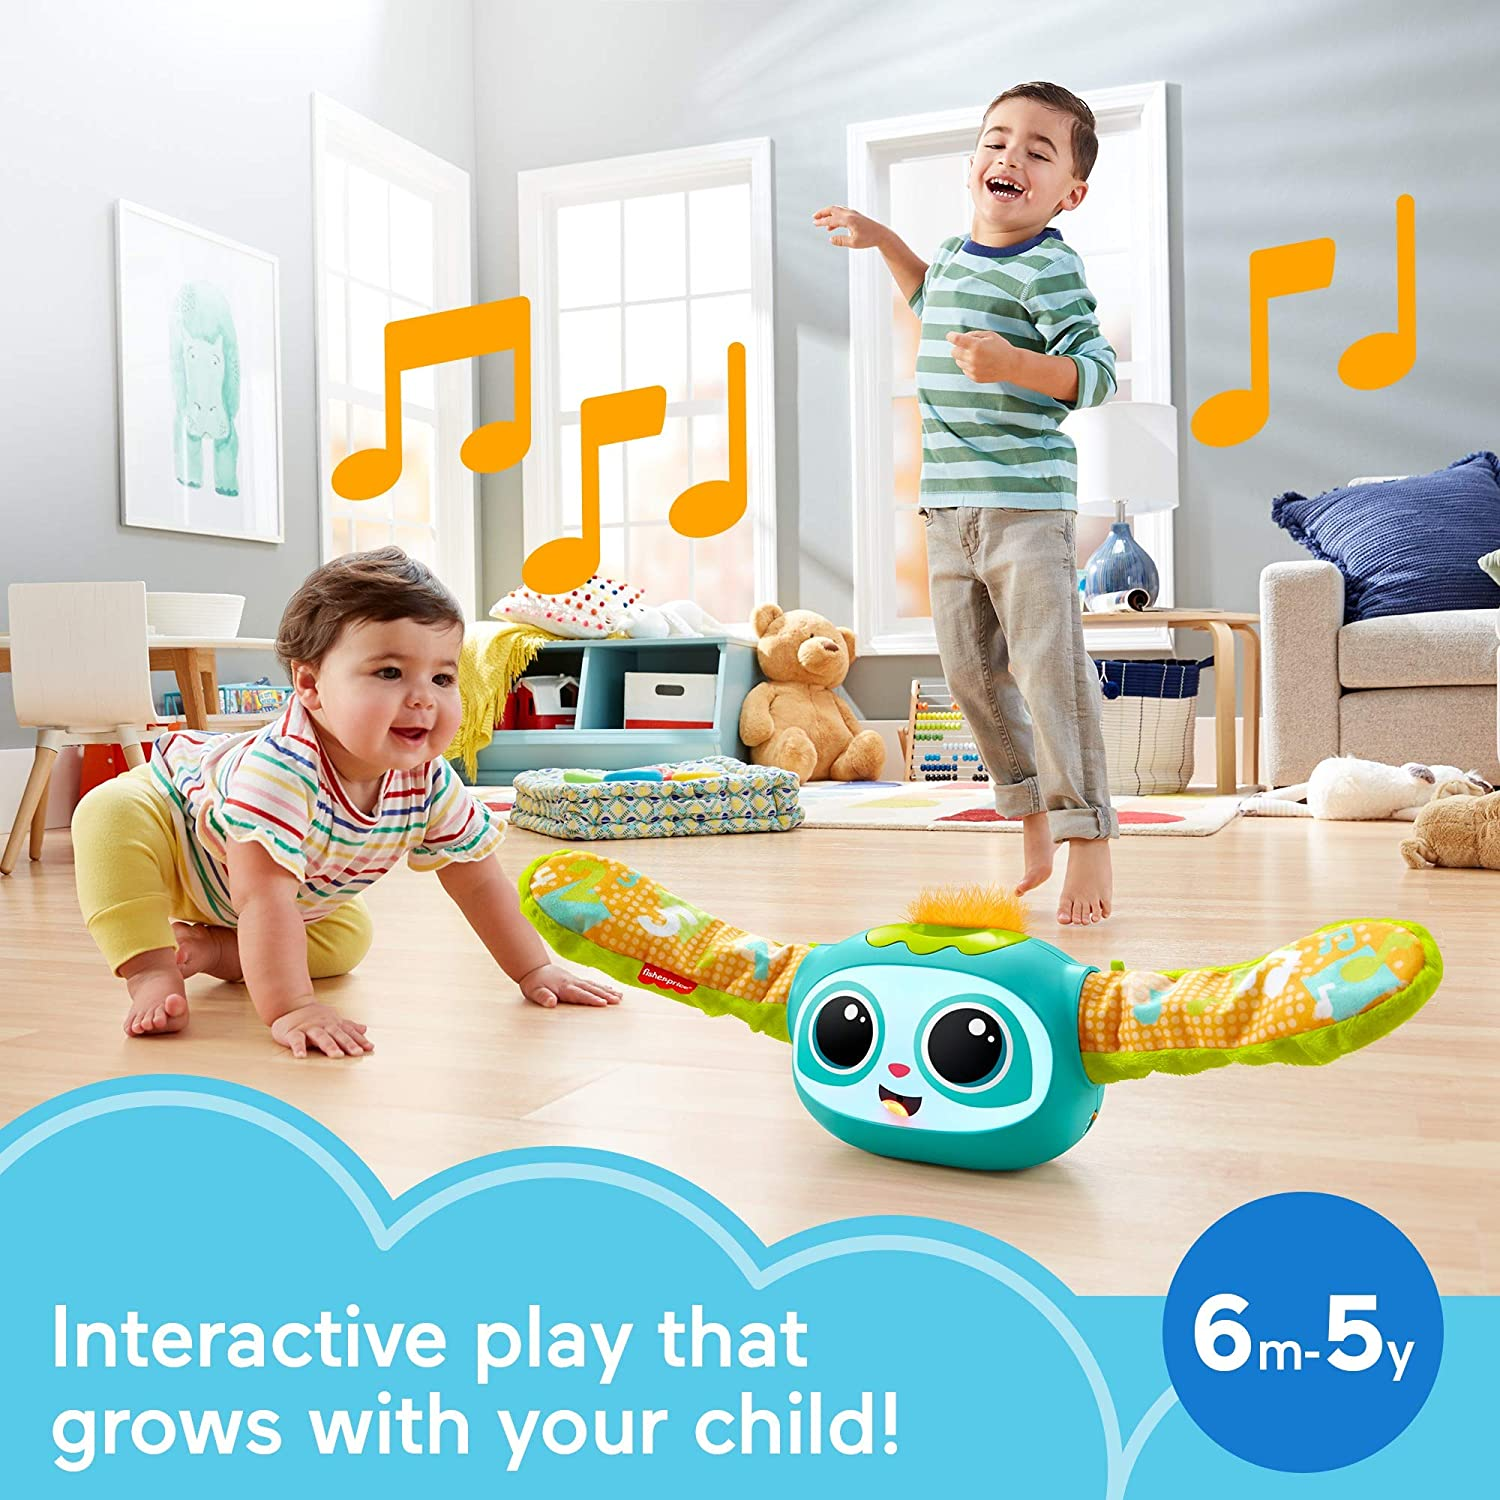 Rollin Rovee Fisher Price Activity Toy - Grows with your child